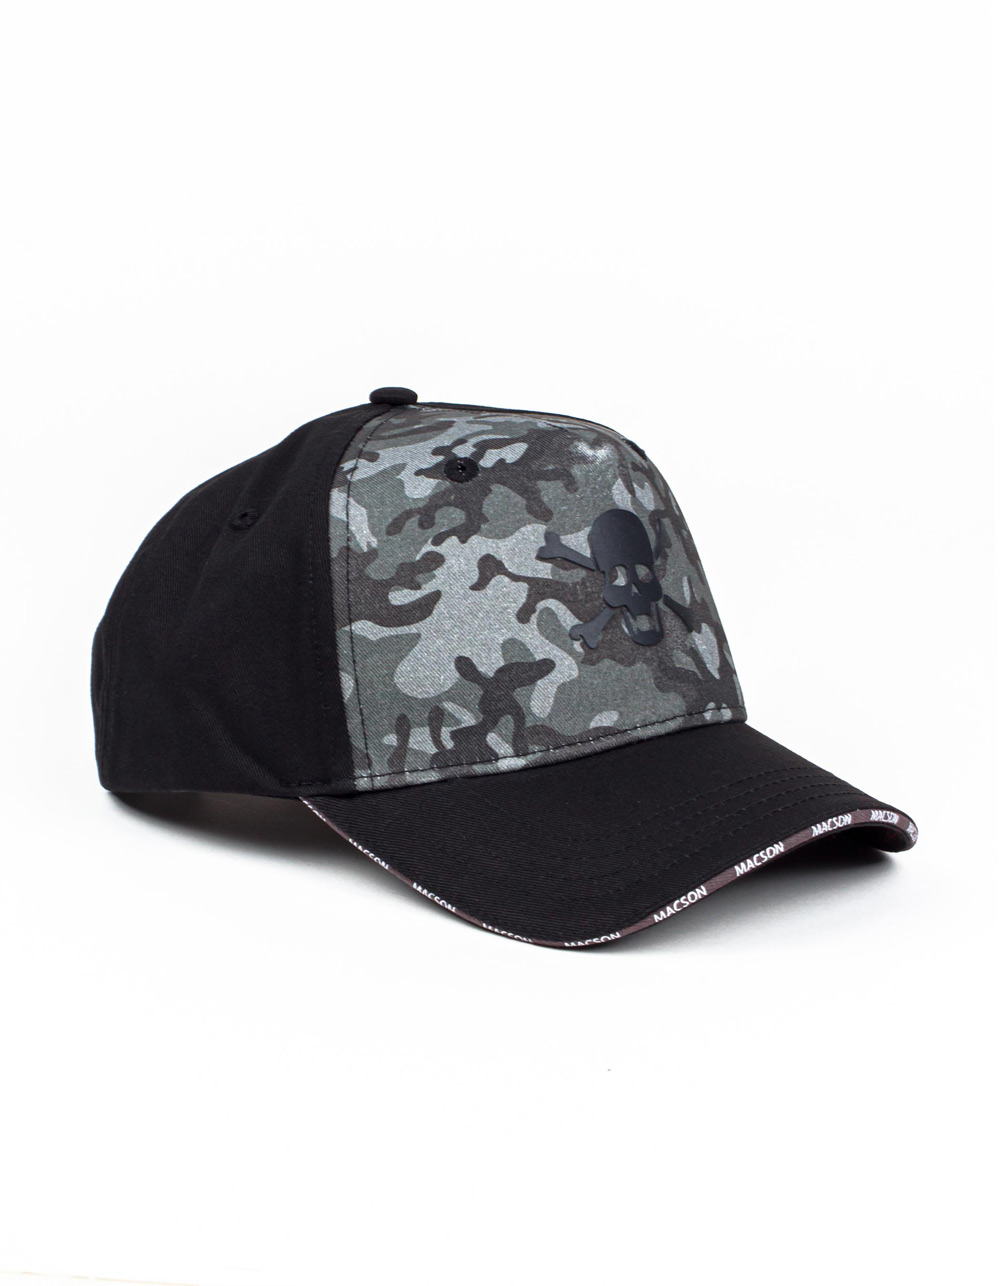 Skull print cap - Backside